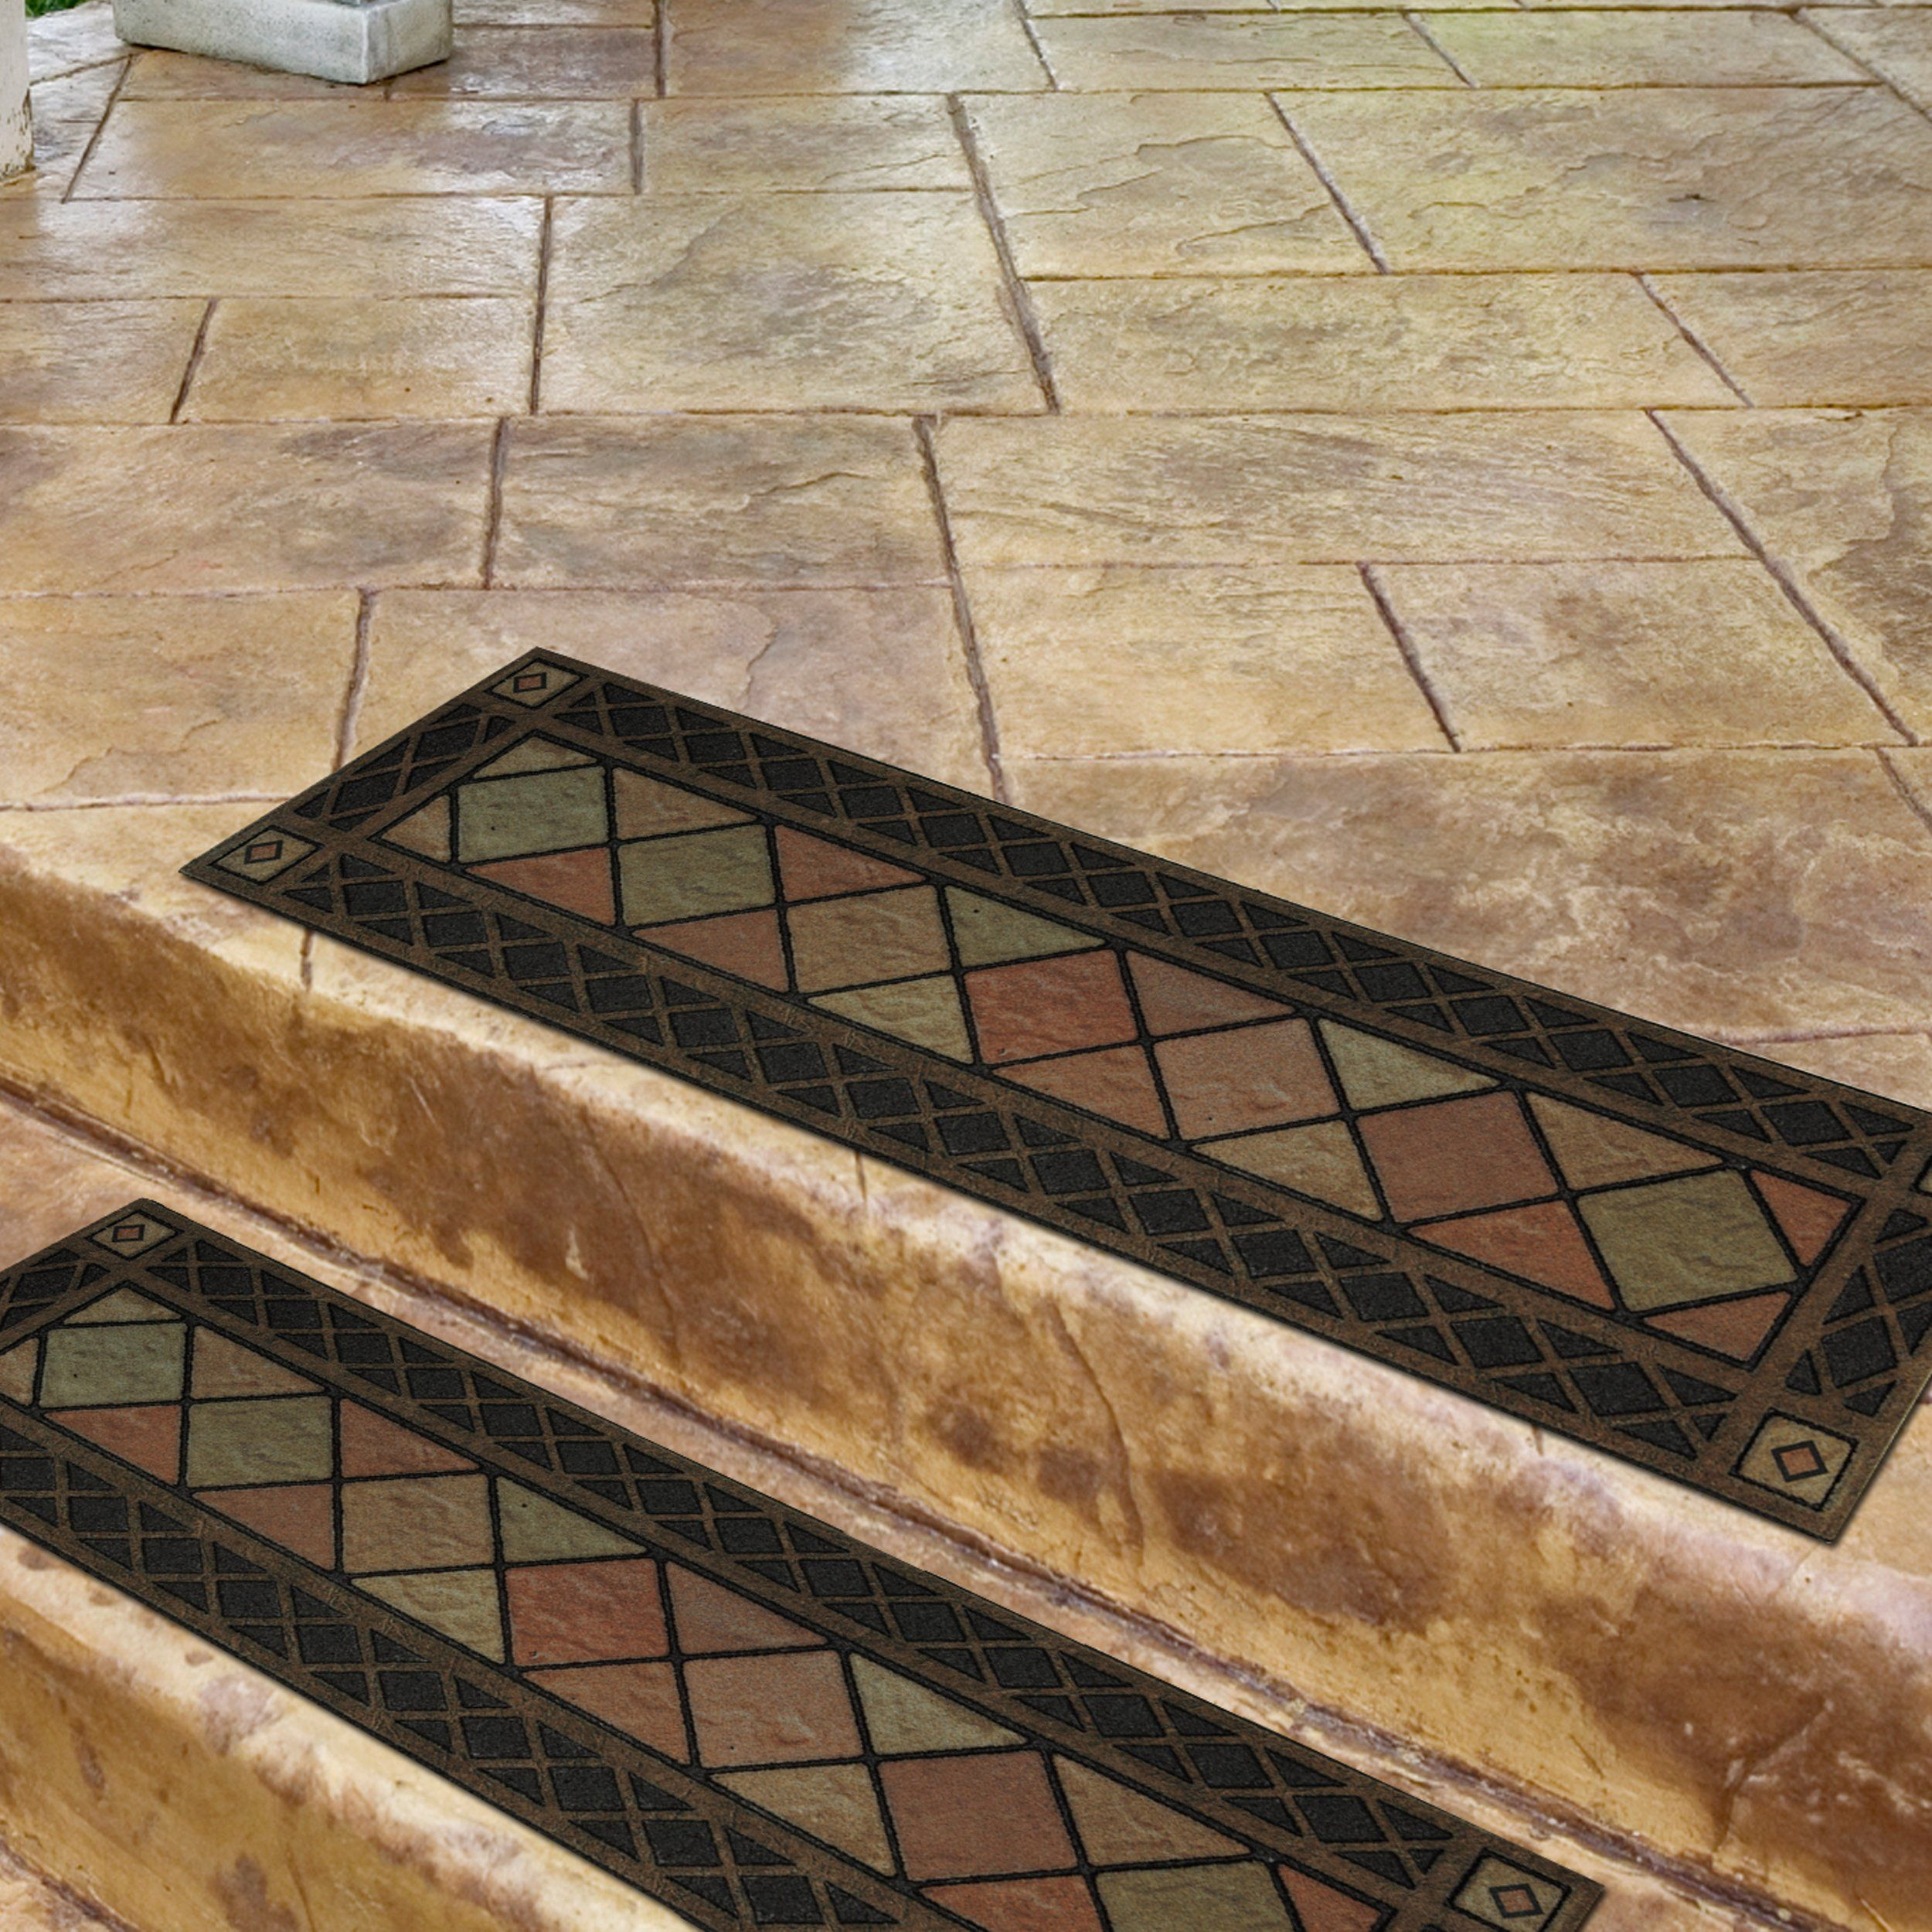 set trellis of mats on design tread quotations shopping yellow rubber stair protectors gold find cheap carpet deals lattice get modern guides rugs